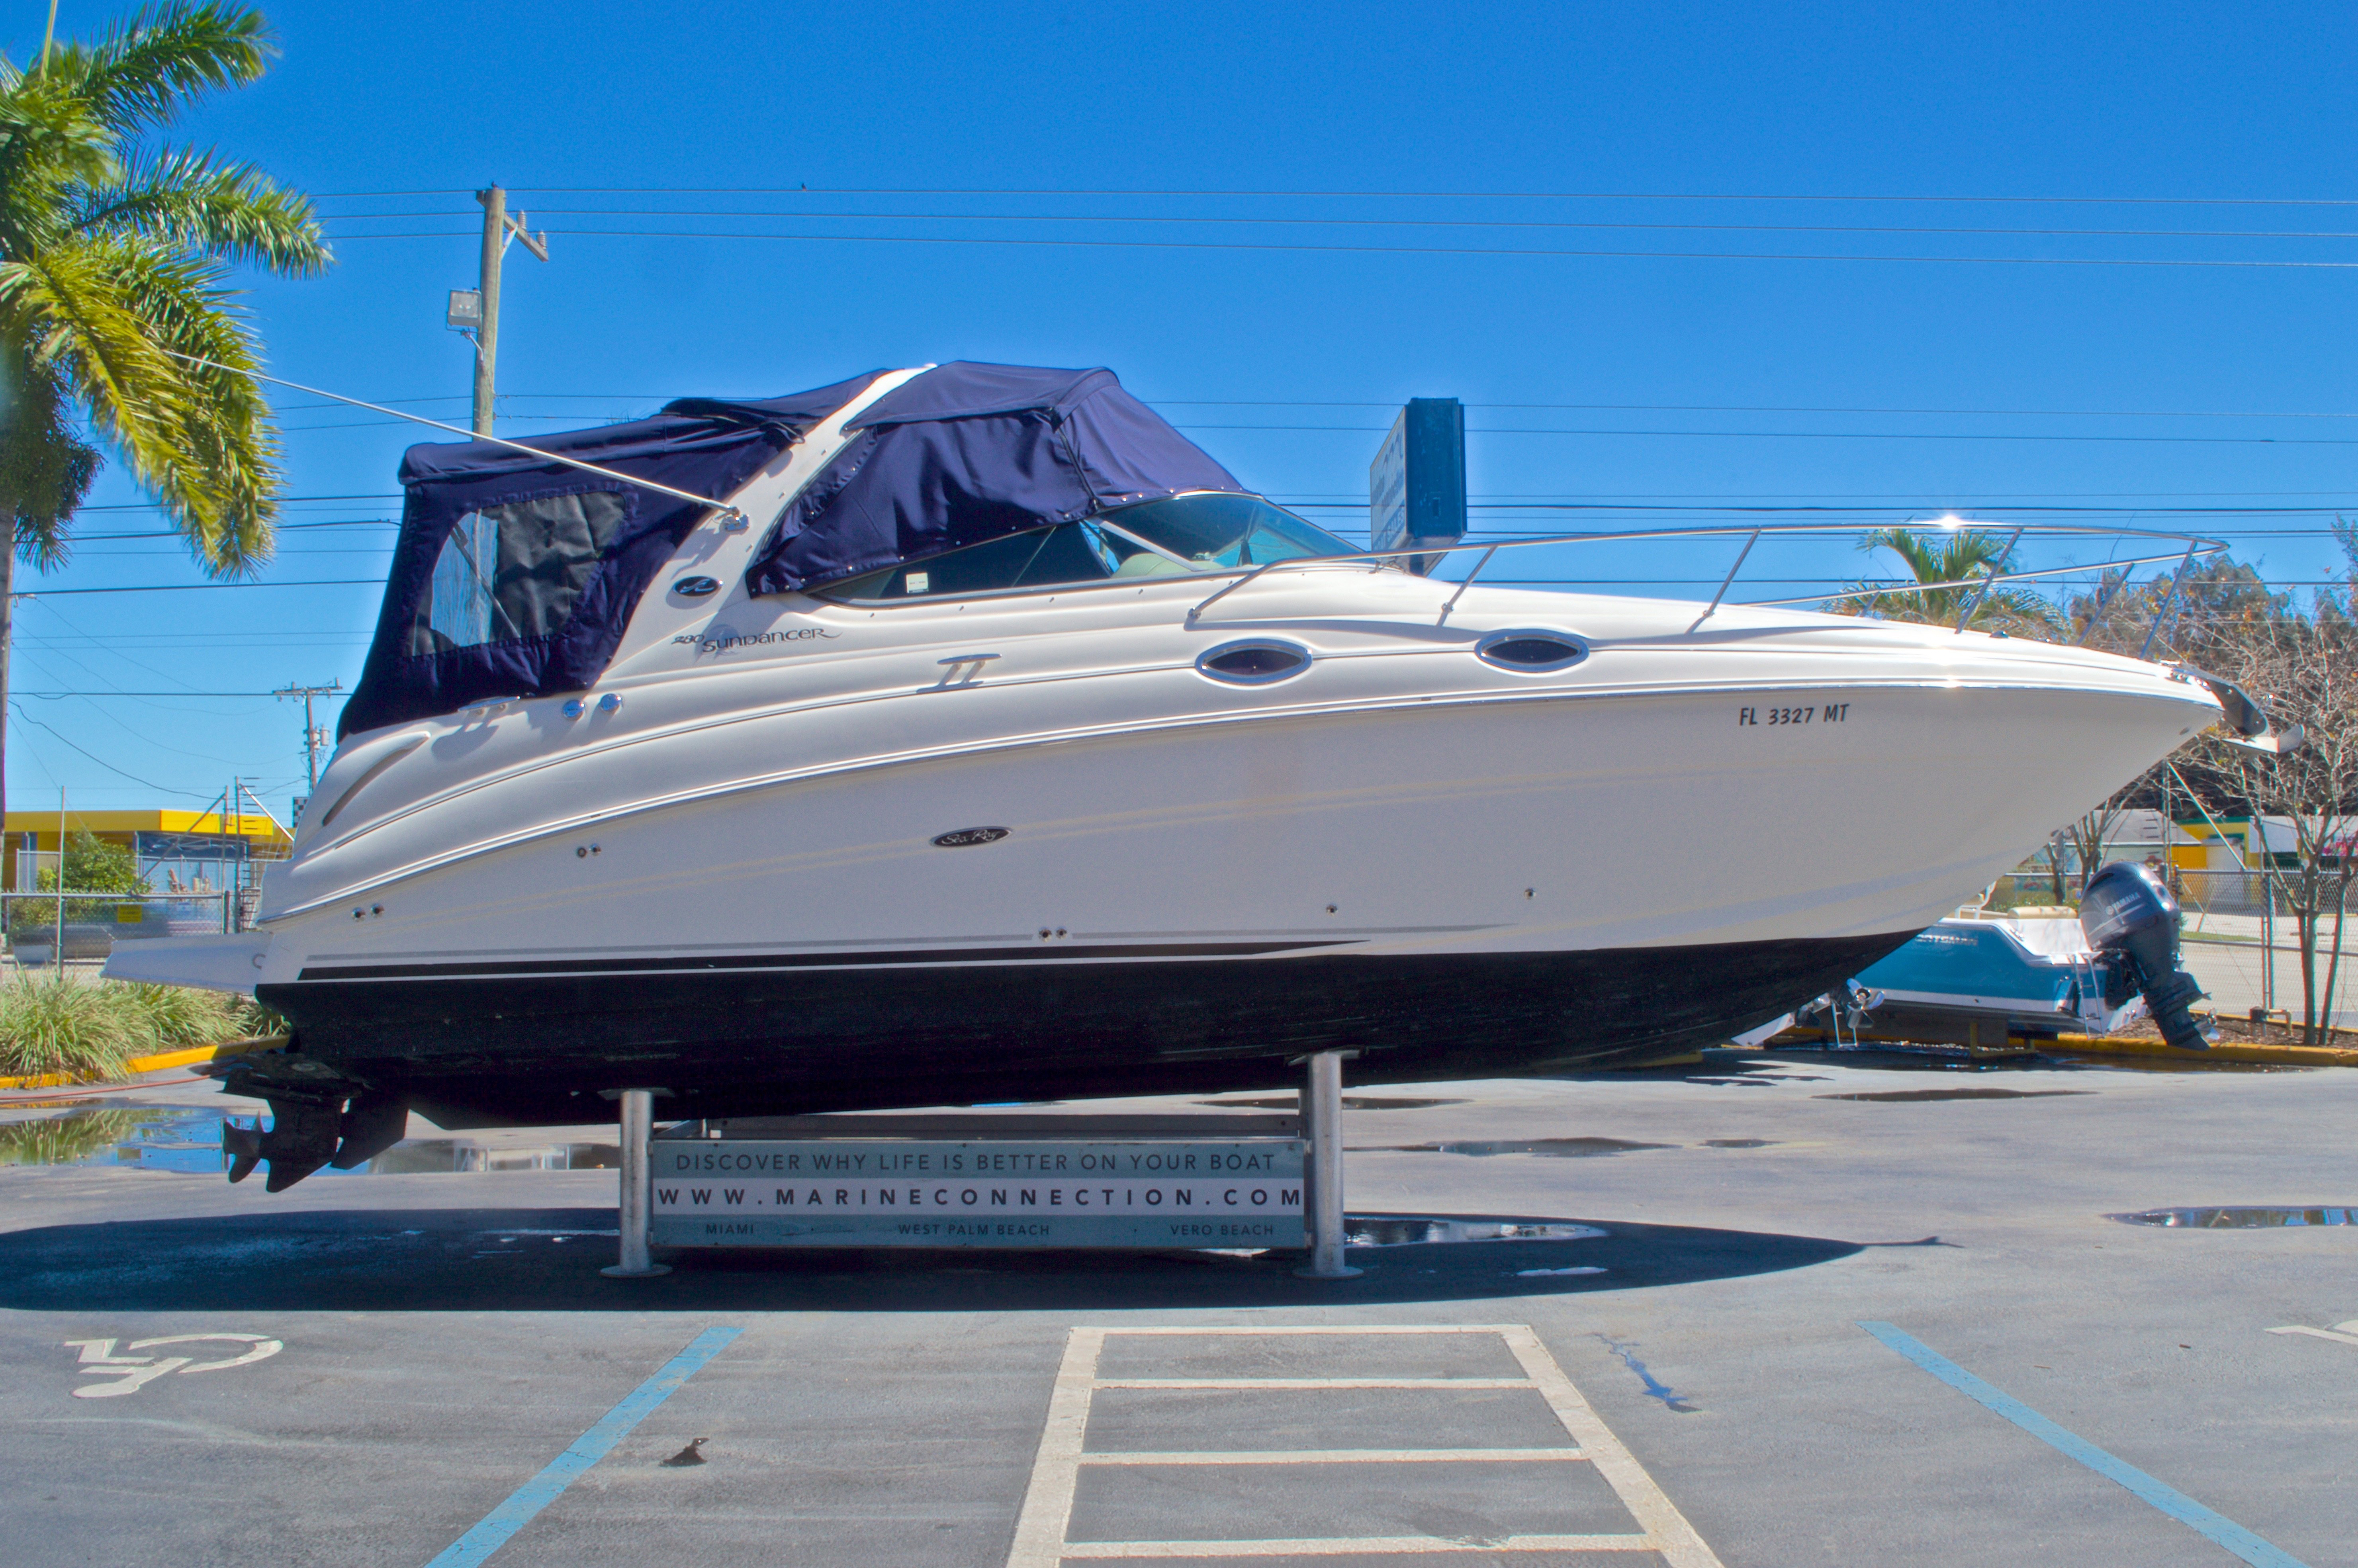 Thumbnail 4 for Used 2005 Sea Ray 280 Sundancer boat for sale in West Palm Beach, FL